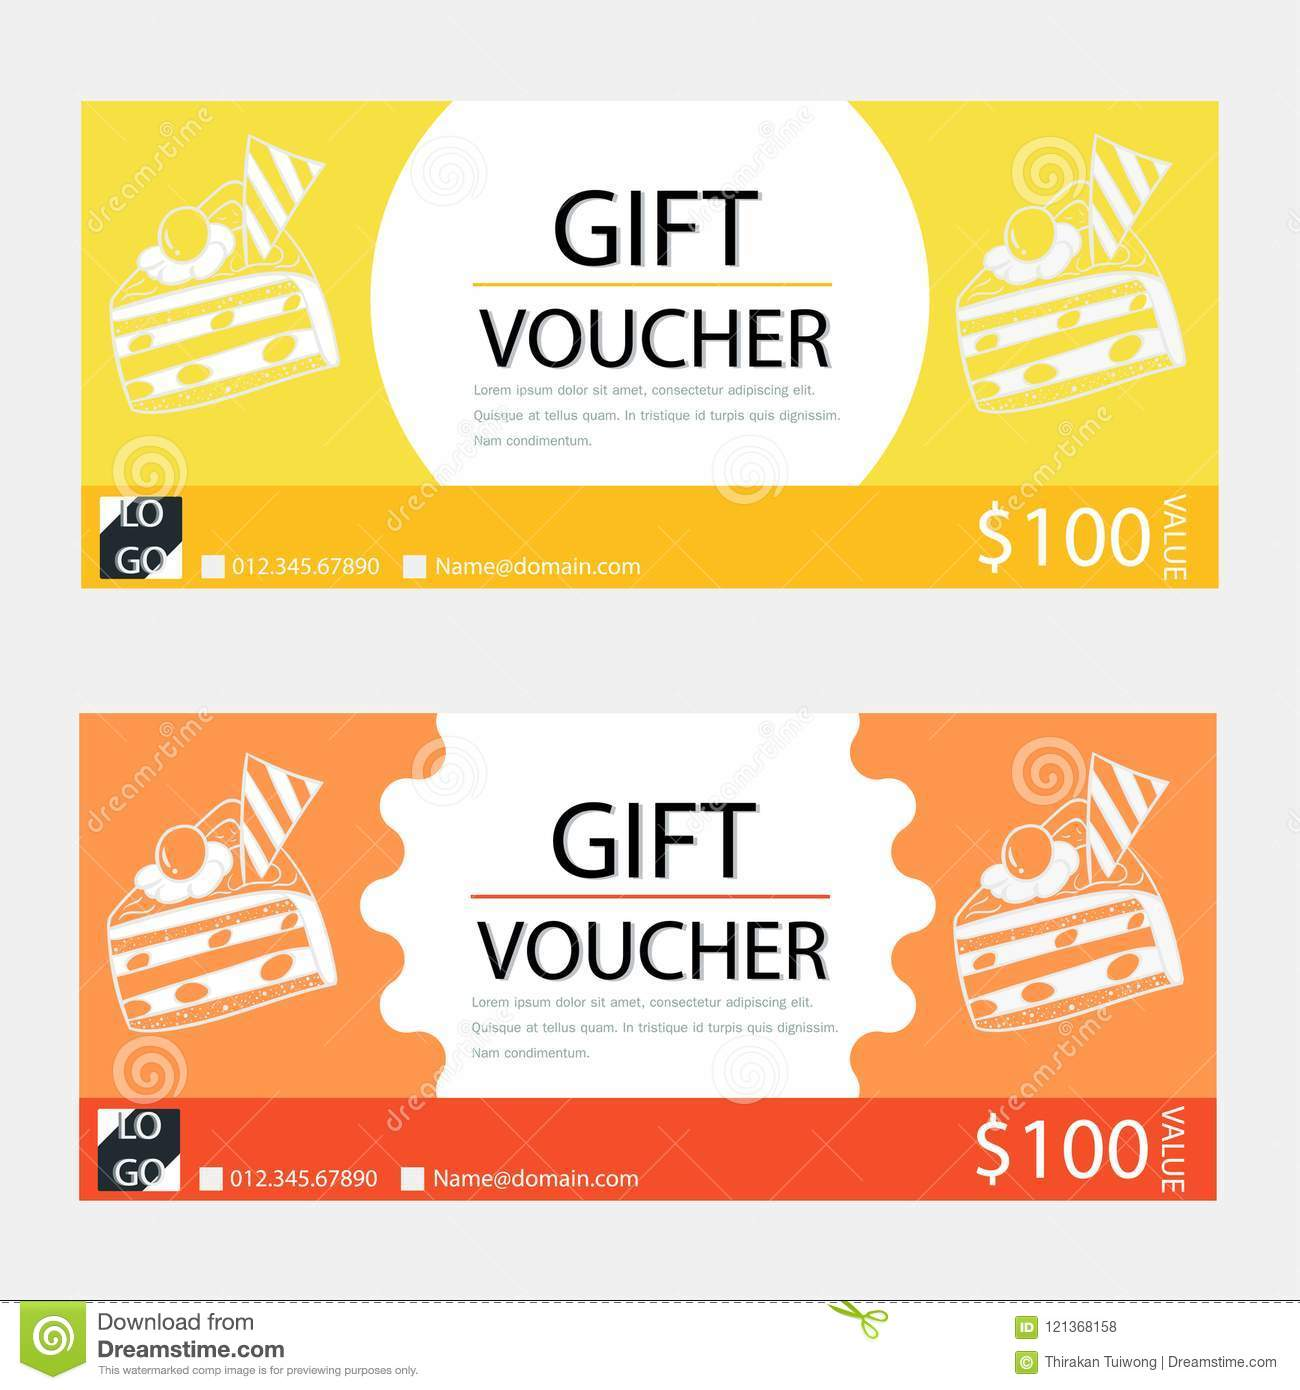 Ordinaire Gift Voucher,Coupon Template With Flat Design